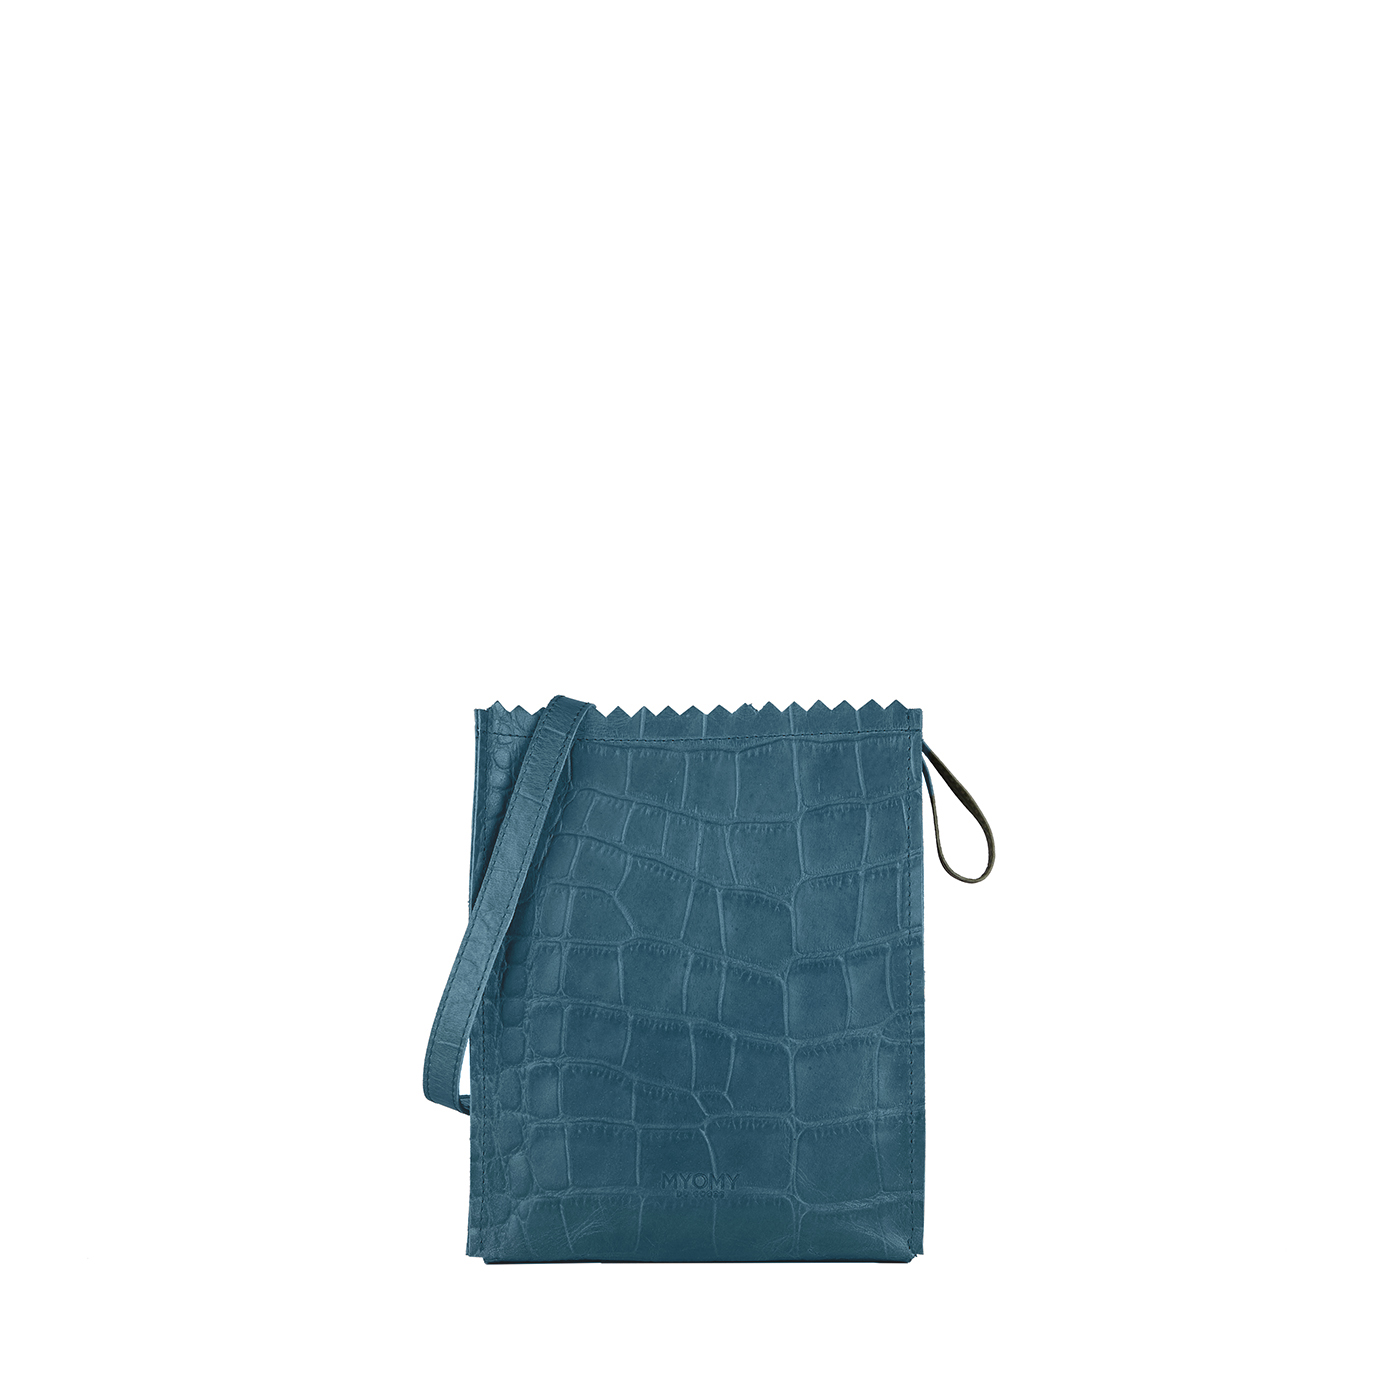 MY PAPER BAG Baggy medium – croco denim blue